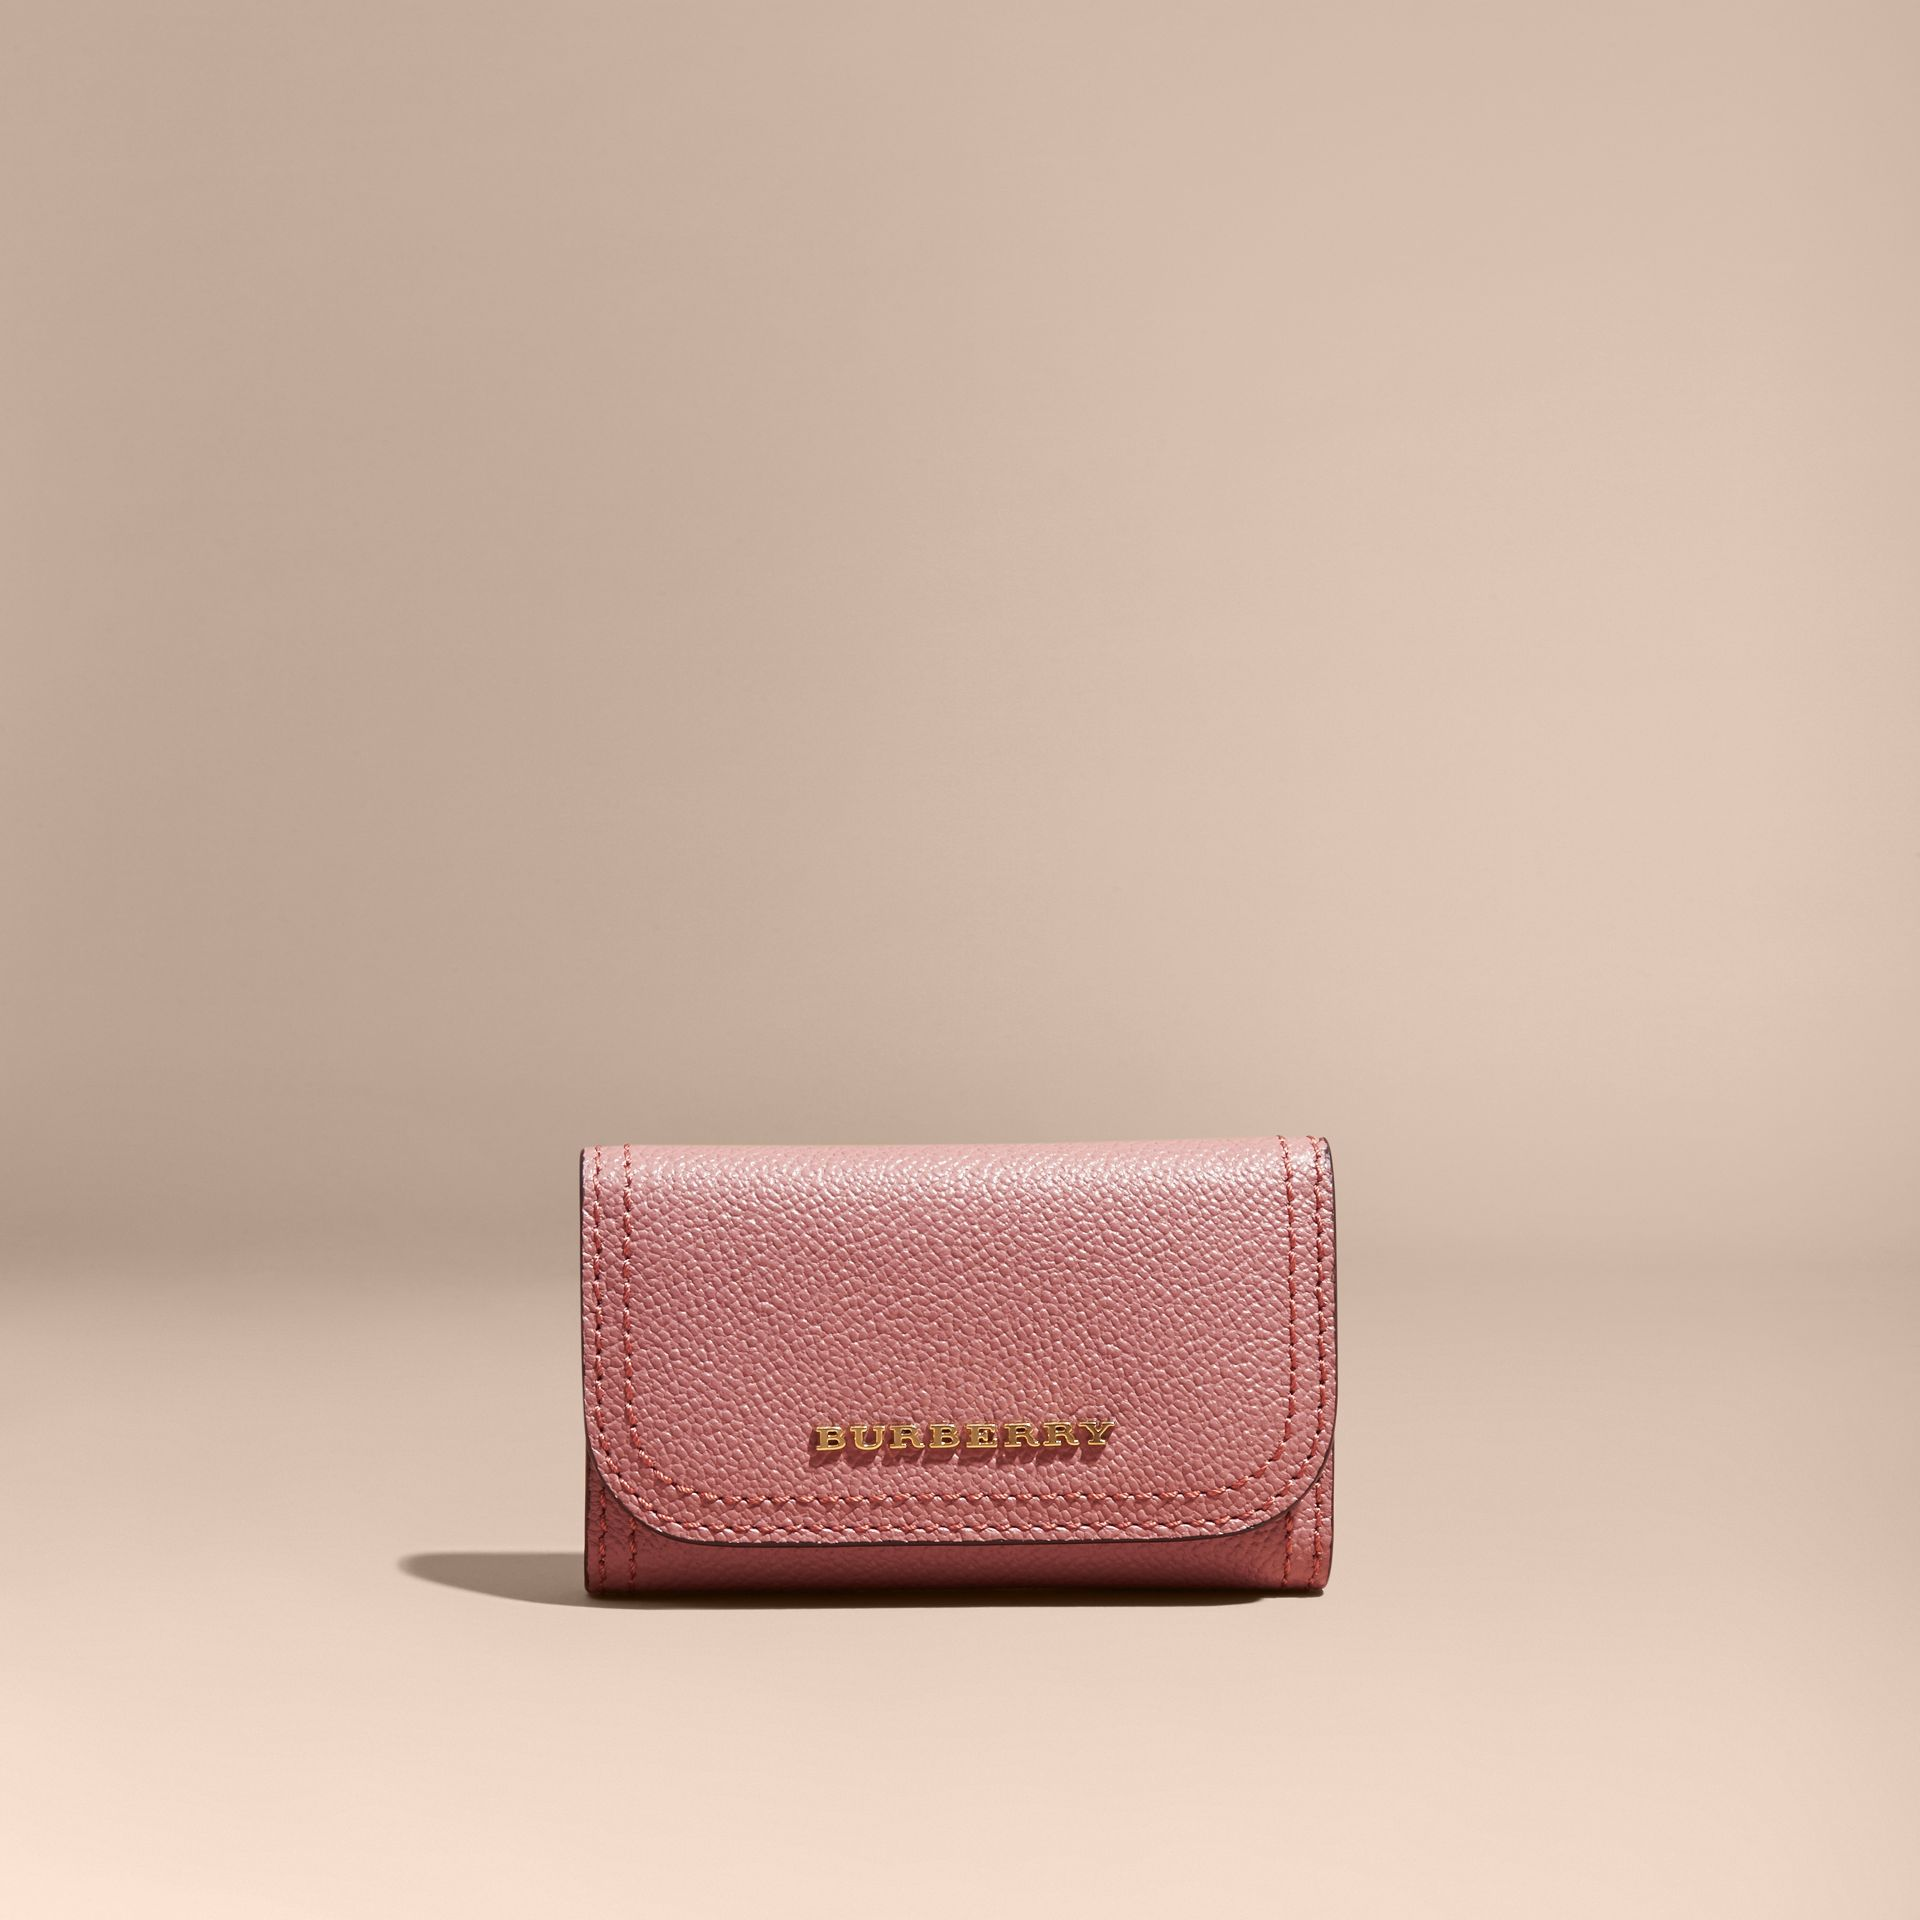 Grainy Leather Key Holder in Dusty Pink - Women | Burberry Canada - gallery image 6